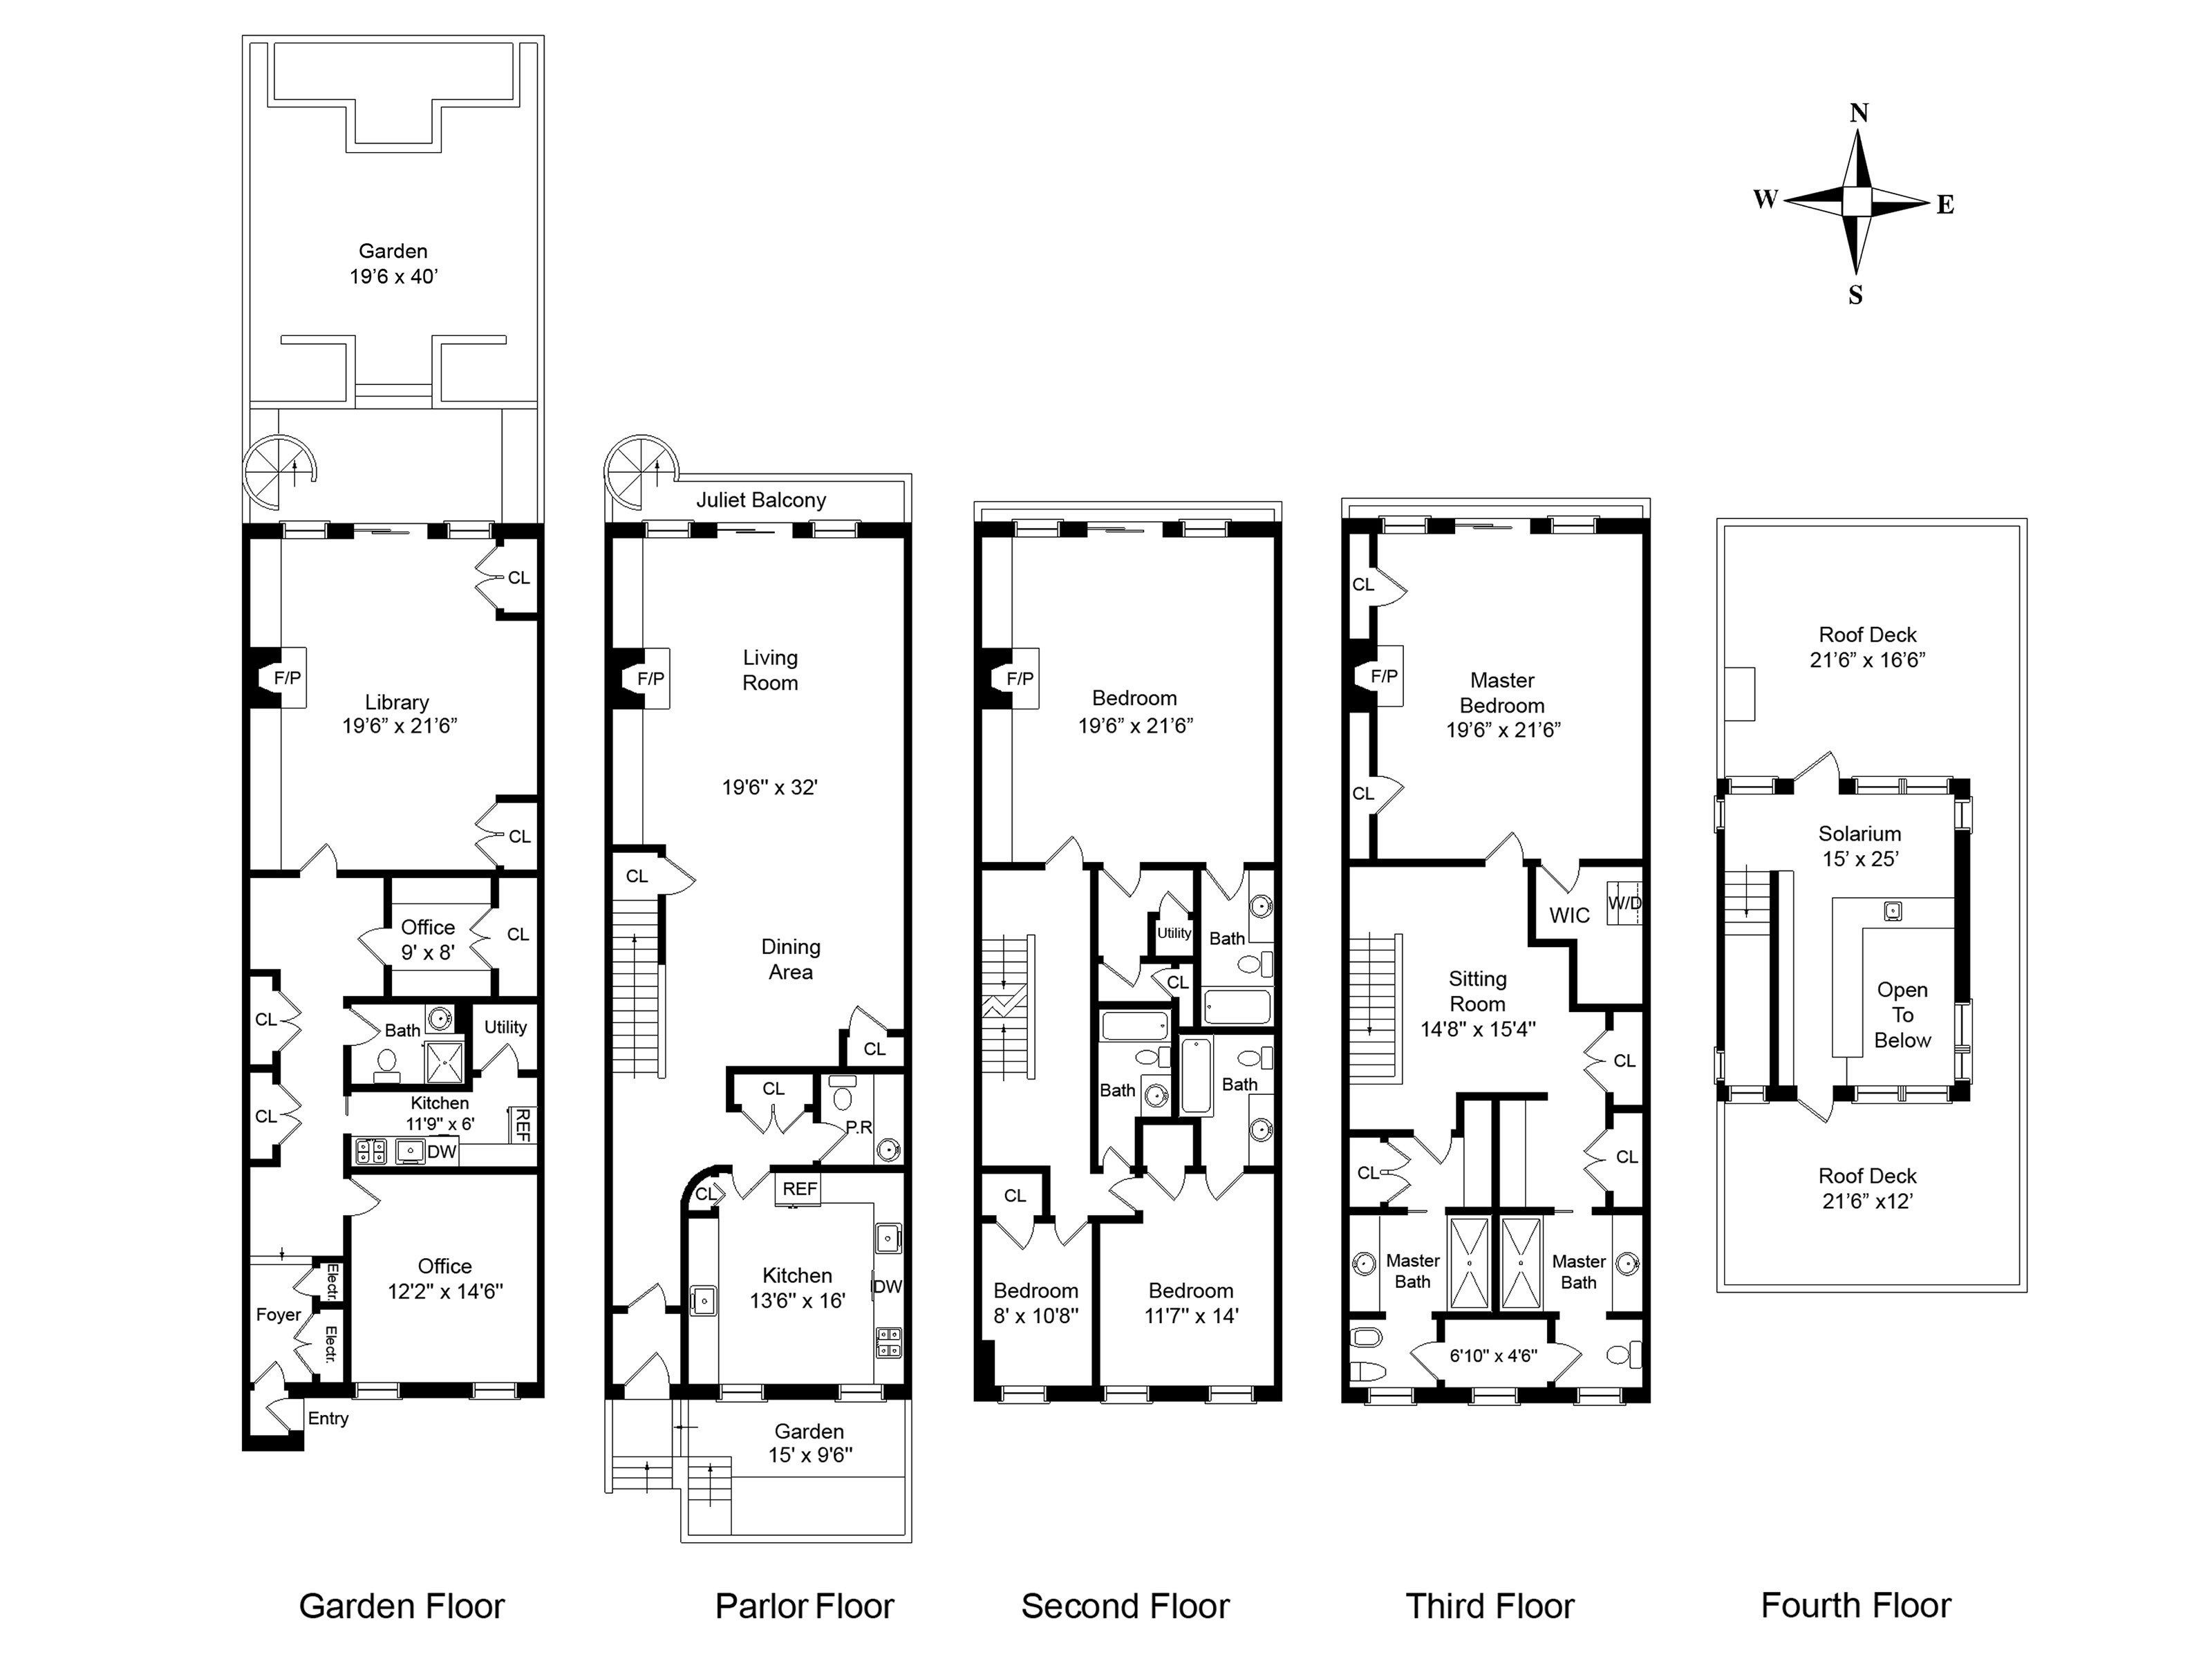 New york townhouse floor plans 4 story th plan for 4 story townhouse floor plans